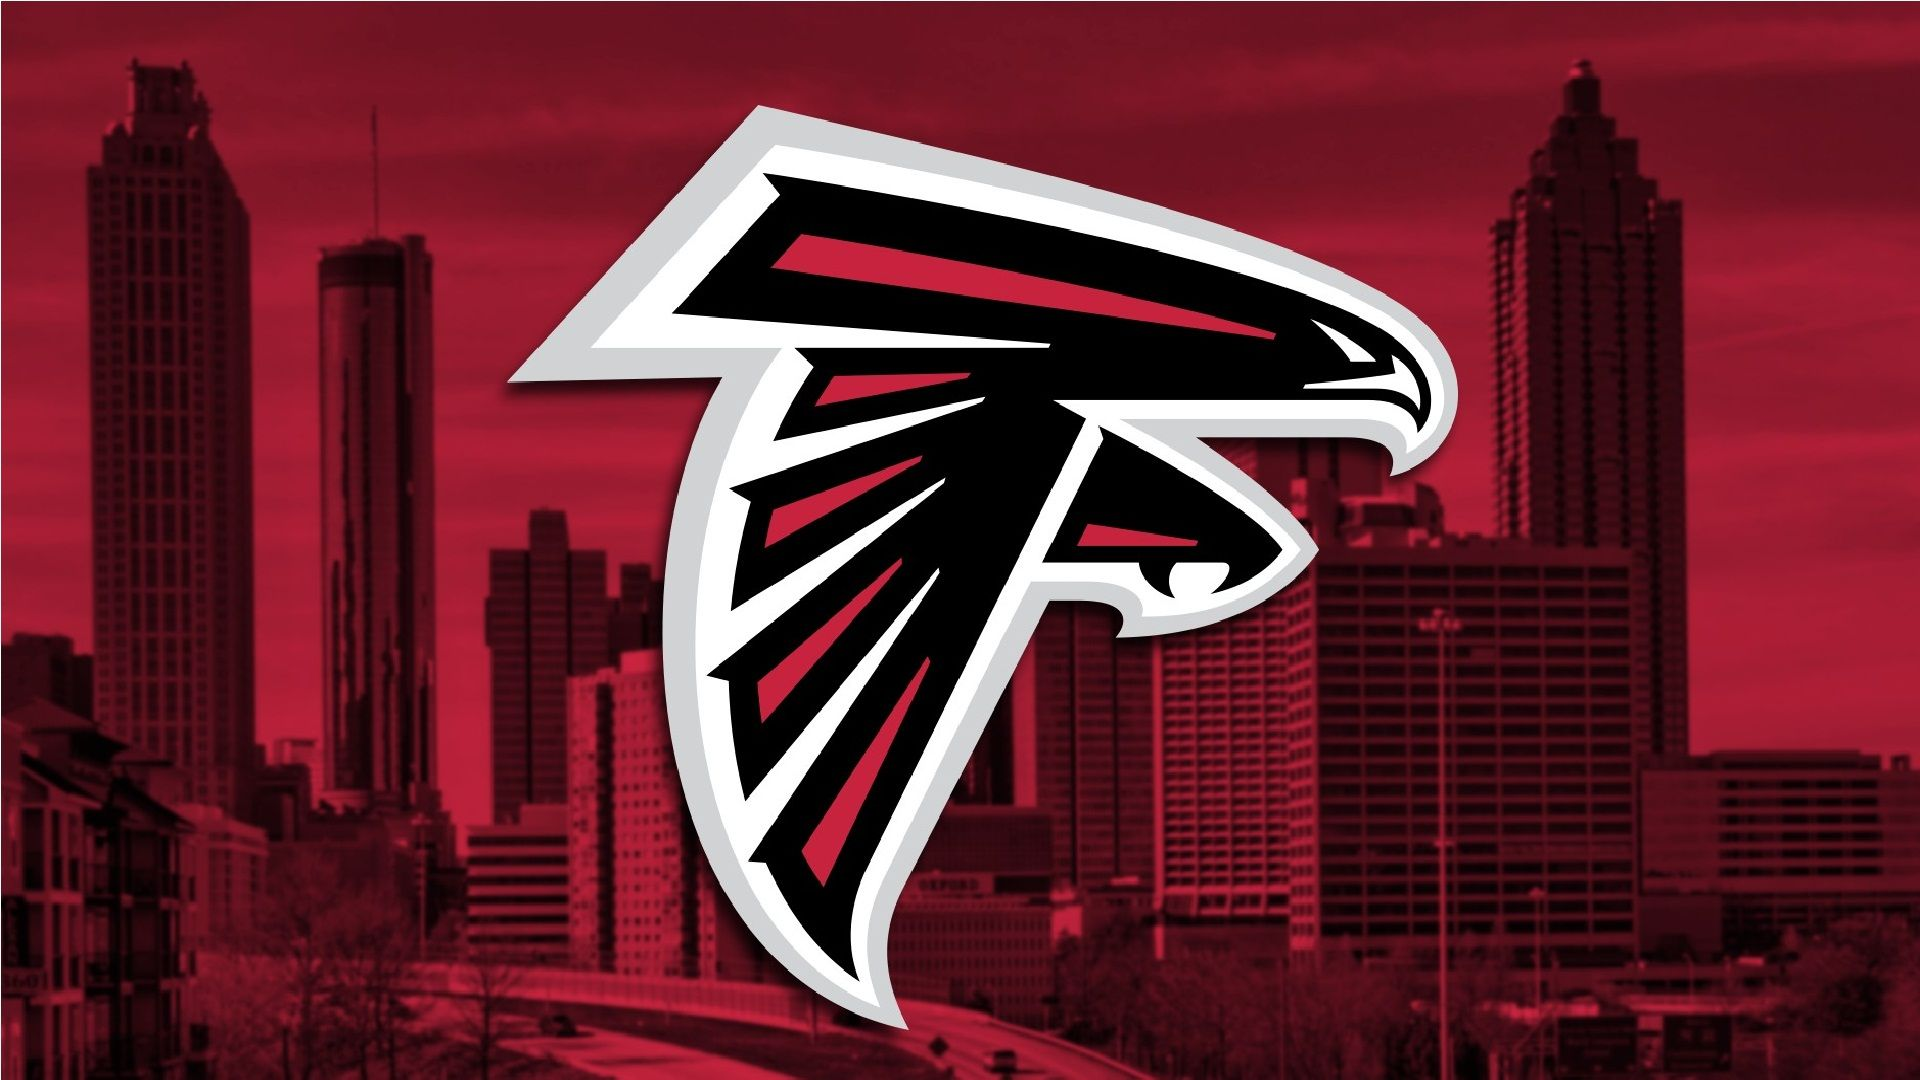 Atlanta Falcons Desktop Wallpapers 2020 NFL Football